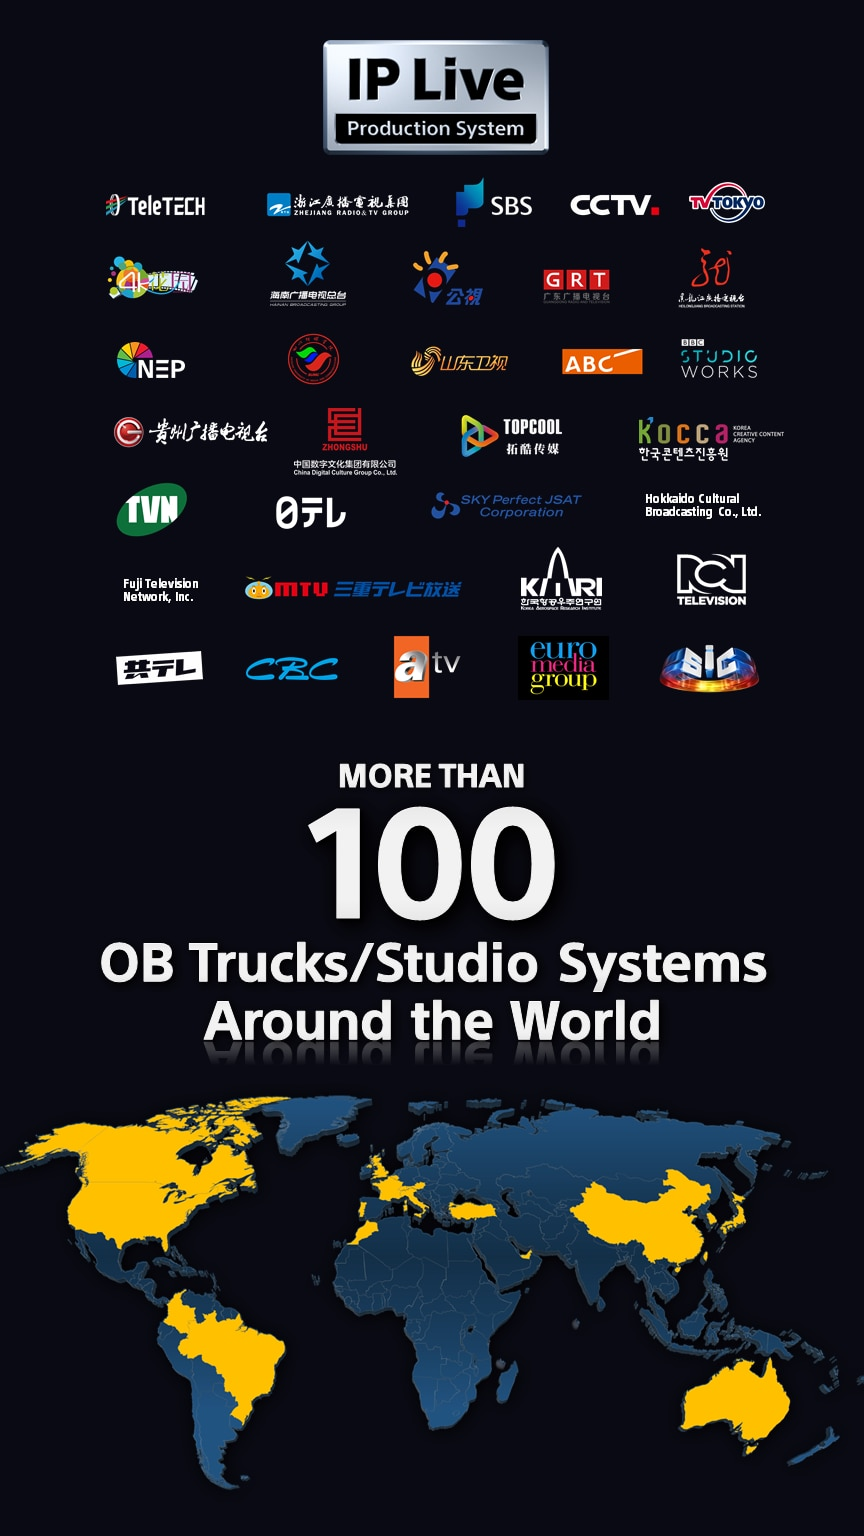 More than 100 OB Trucks/Studio Systems Around the world